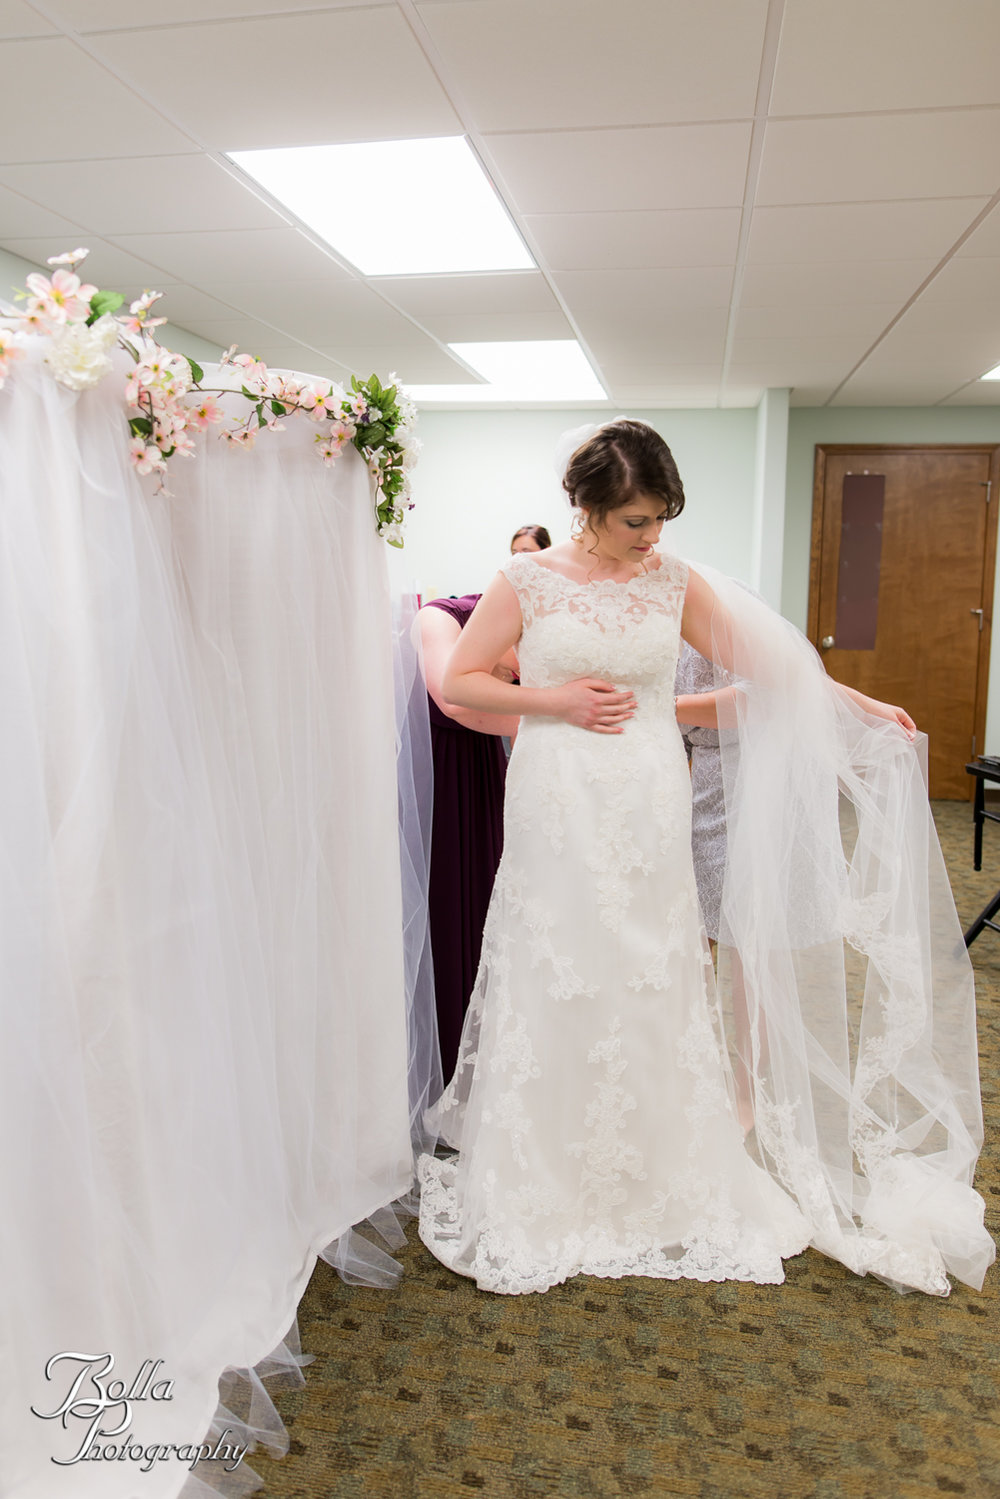 Bolla_Photography_St_Louis_wedding_photographer_Alton_IL__Baptist_Church-0041.jpg